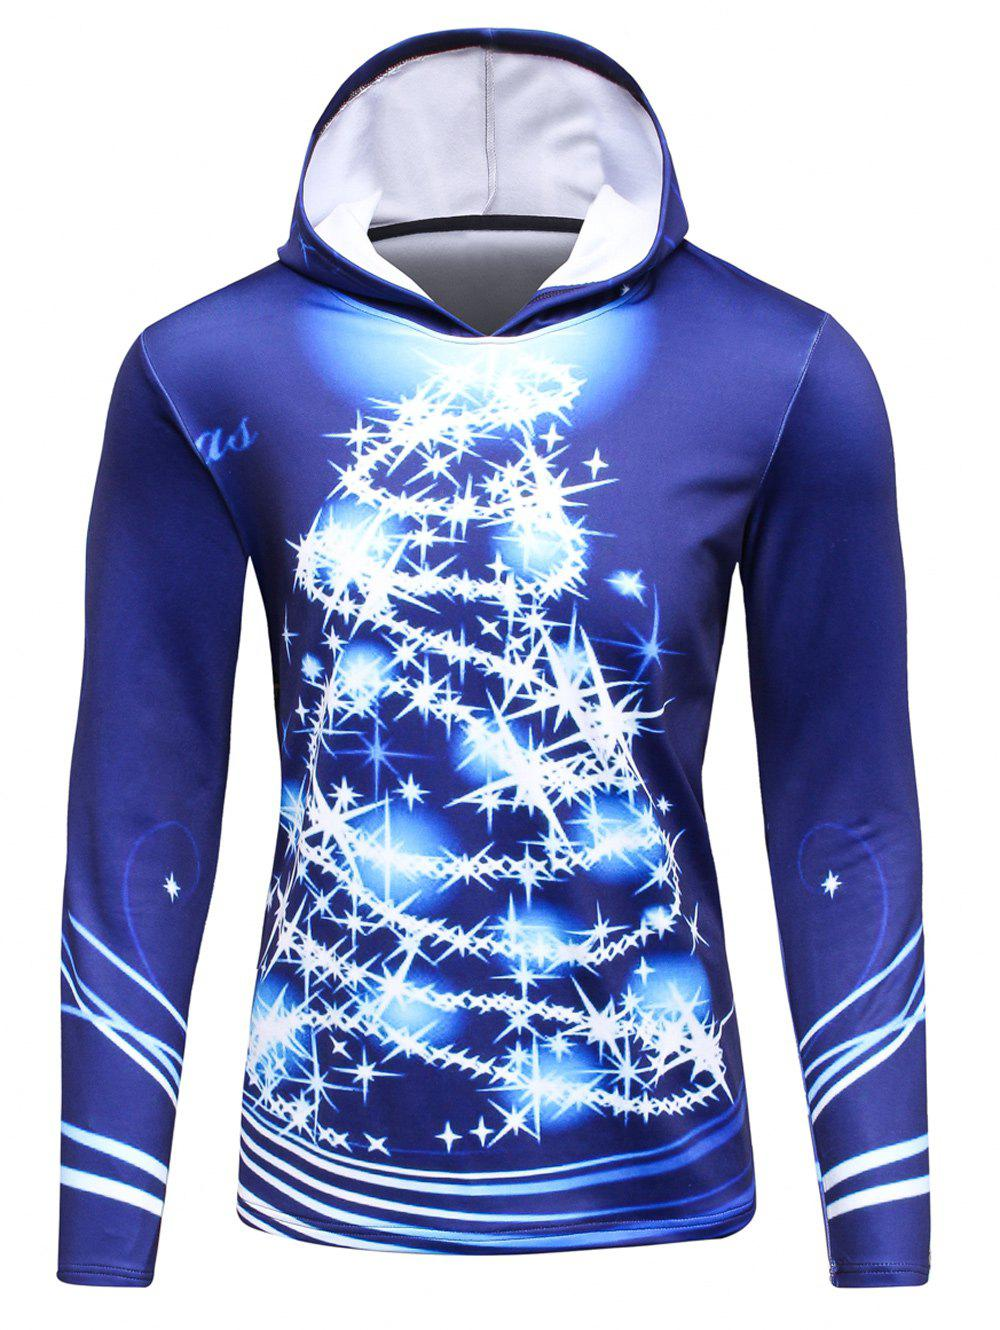 3D Christmas Tree Print Flocking HoodieMEN<br><br>Size: M; Color: BLUE; Material: Cotton,Polyester; Shirt Length: Regular; Sleeve Length: Full; Style: Fashion; Weight: 0.559kg; Package Contents: 1 x Hoodie;